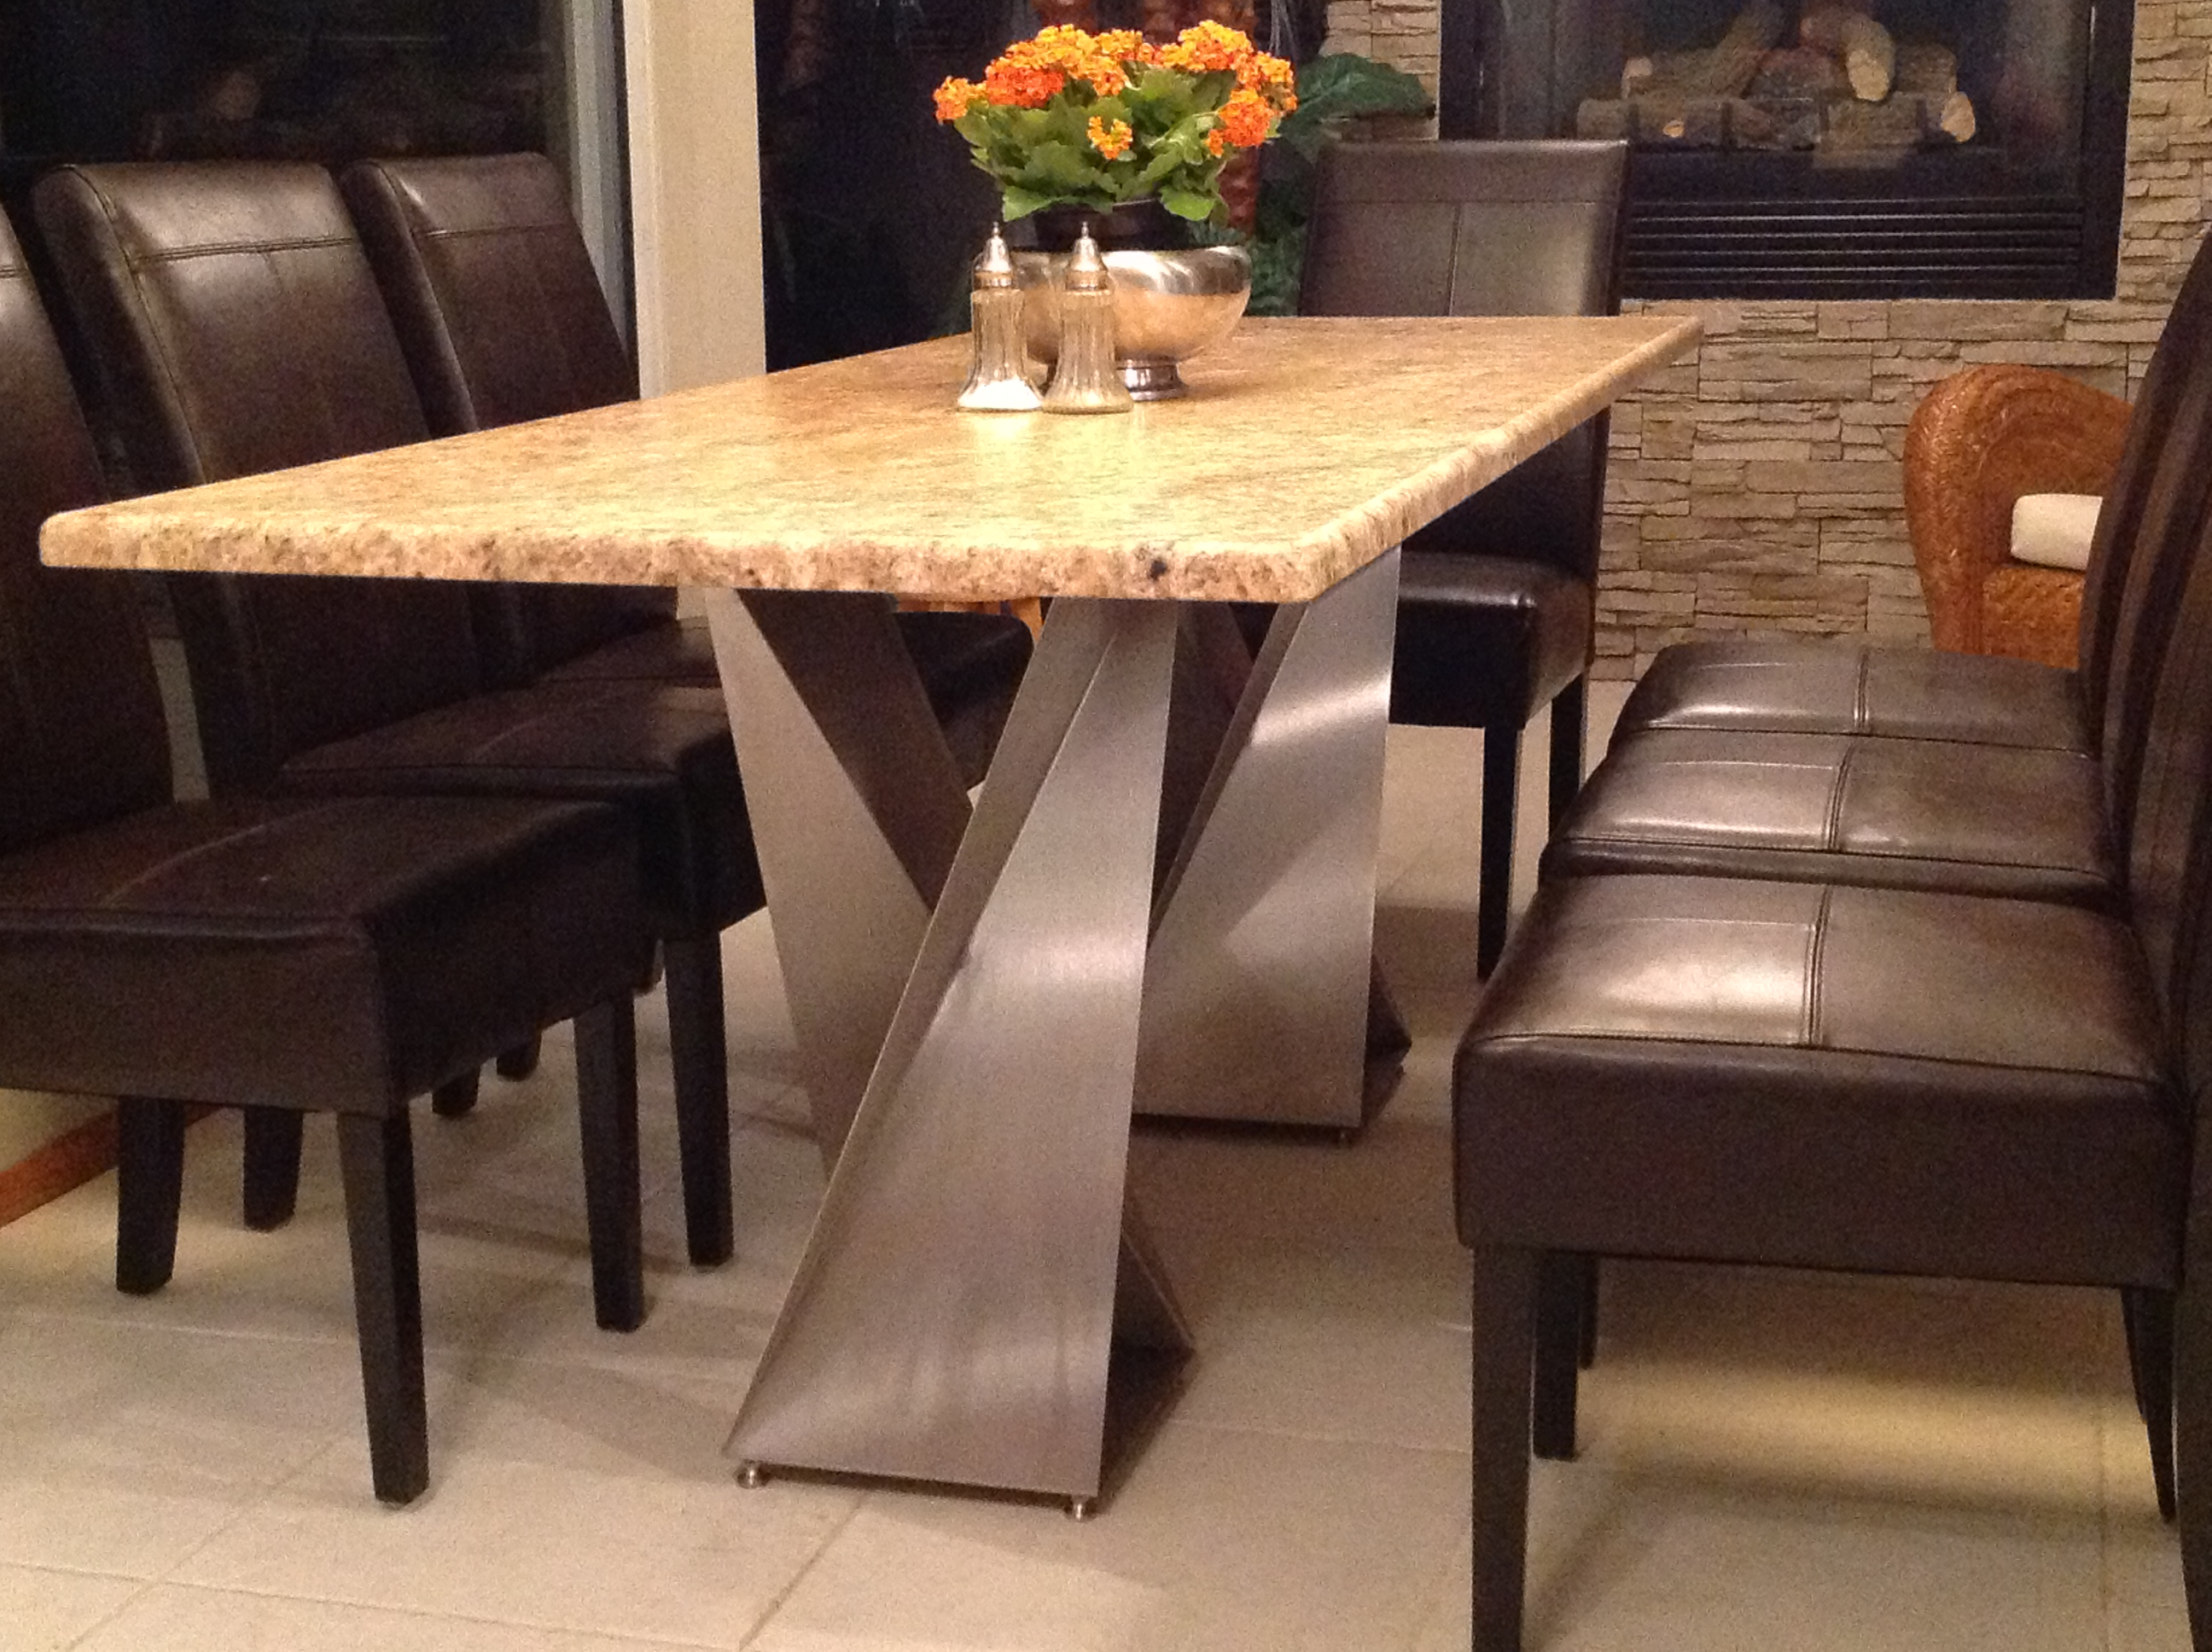 Stainless Steel Table Bases. $ 459.00 ...